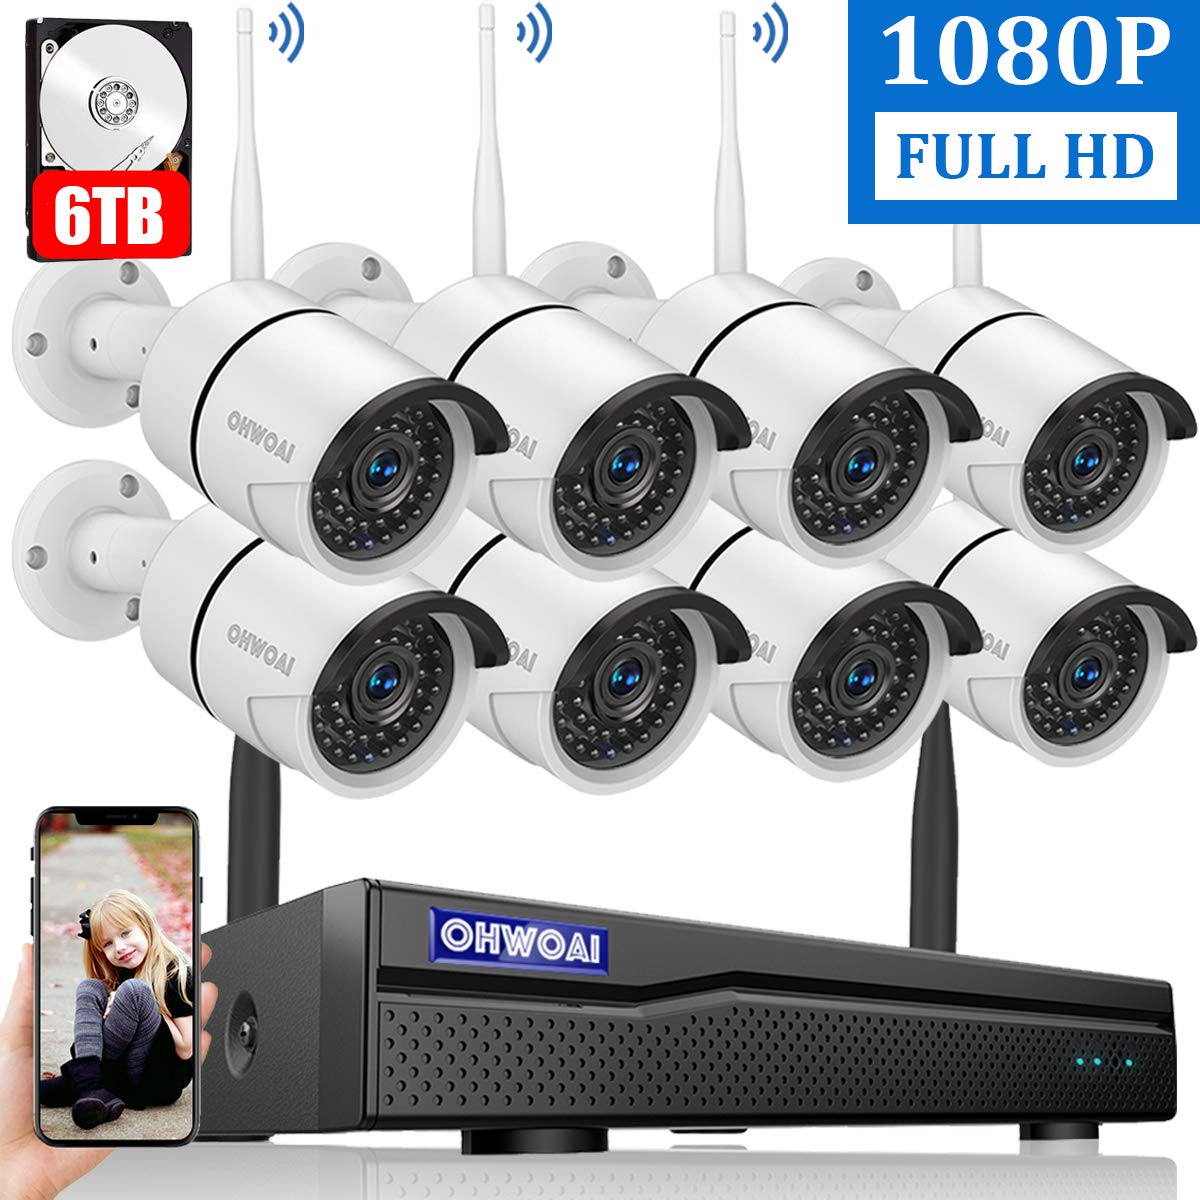 【2020 New】 Wireless Security Camera System, 8 Channel 1080P NVR with 6TB Hard Drive, 8PCS 1080P 2.0MP CCTV WI-FI IP Cameras for Homes,OHWOAI HD Surveillance Video Security System. 71Re49WXmEL